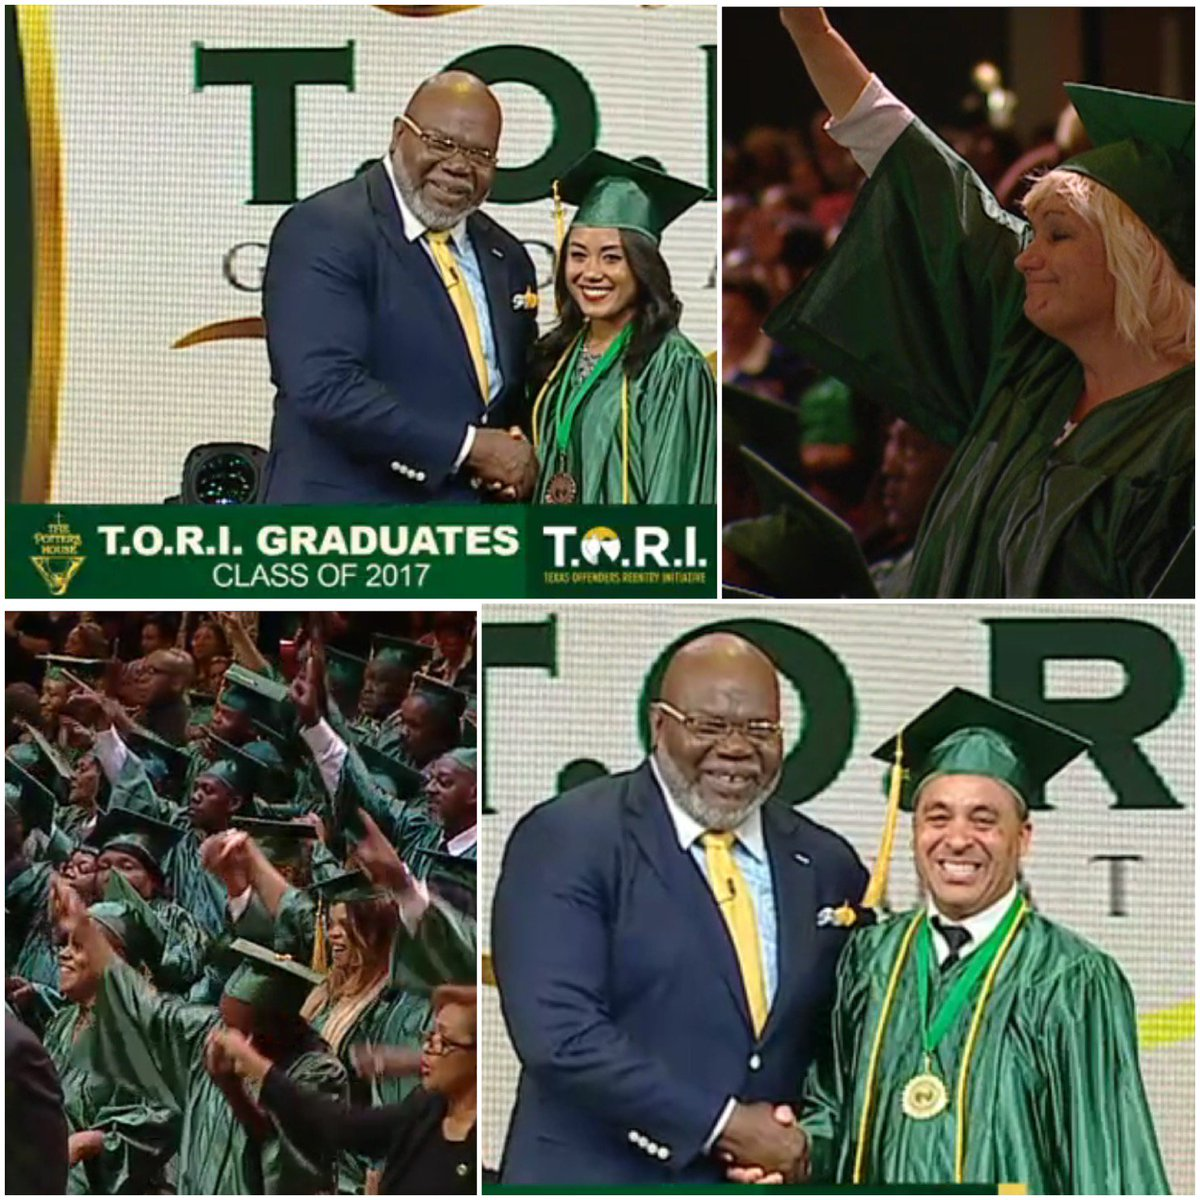 IT&#39;S TIME FOR GRADUATION! We are so proud of our @medctori Graduates! #Blessings #Love #NewBeginning #Tphonline<br>http://pic.twitter.com/0uPrJ1ib99